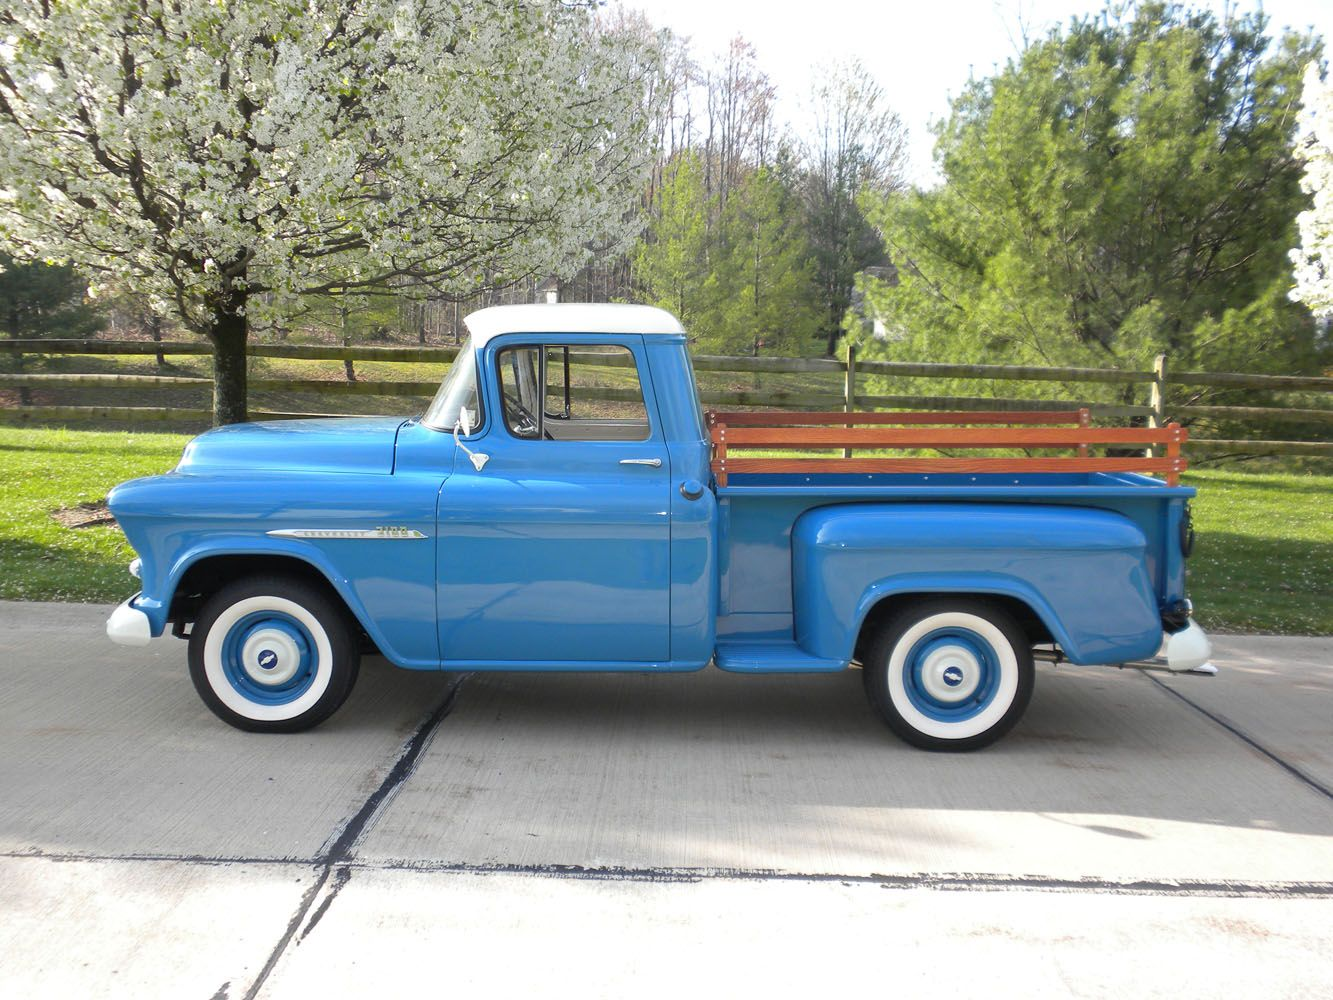 1955 chevy truck   1955 Second Series Chevy GMC Pickup Truck   55     1955 chevy truck   1955 Second Series Chevy GMC Pickup Truck